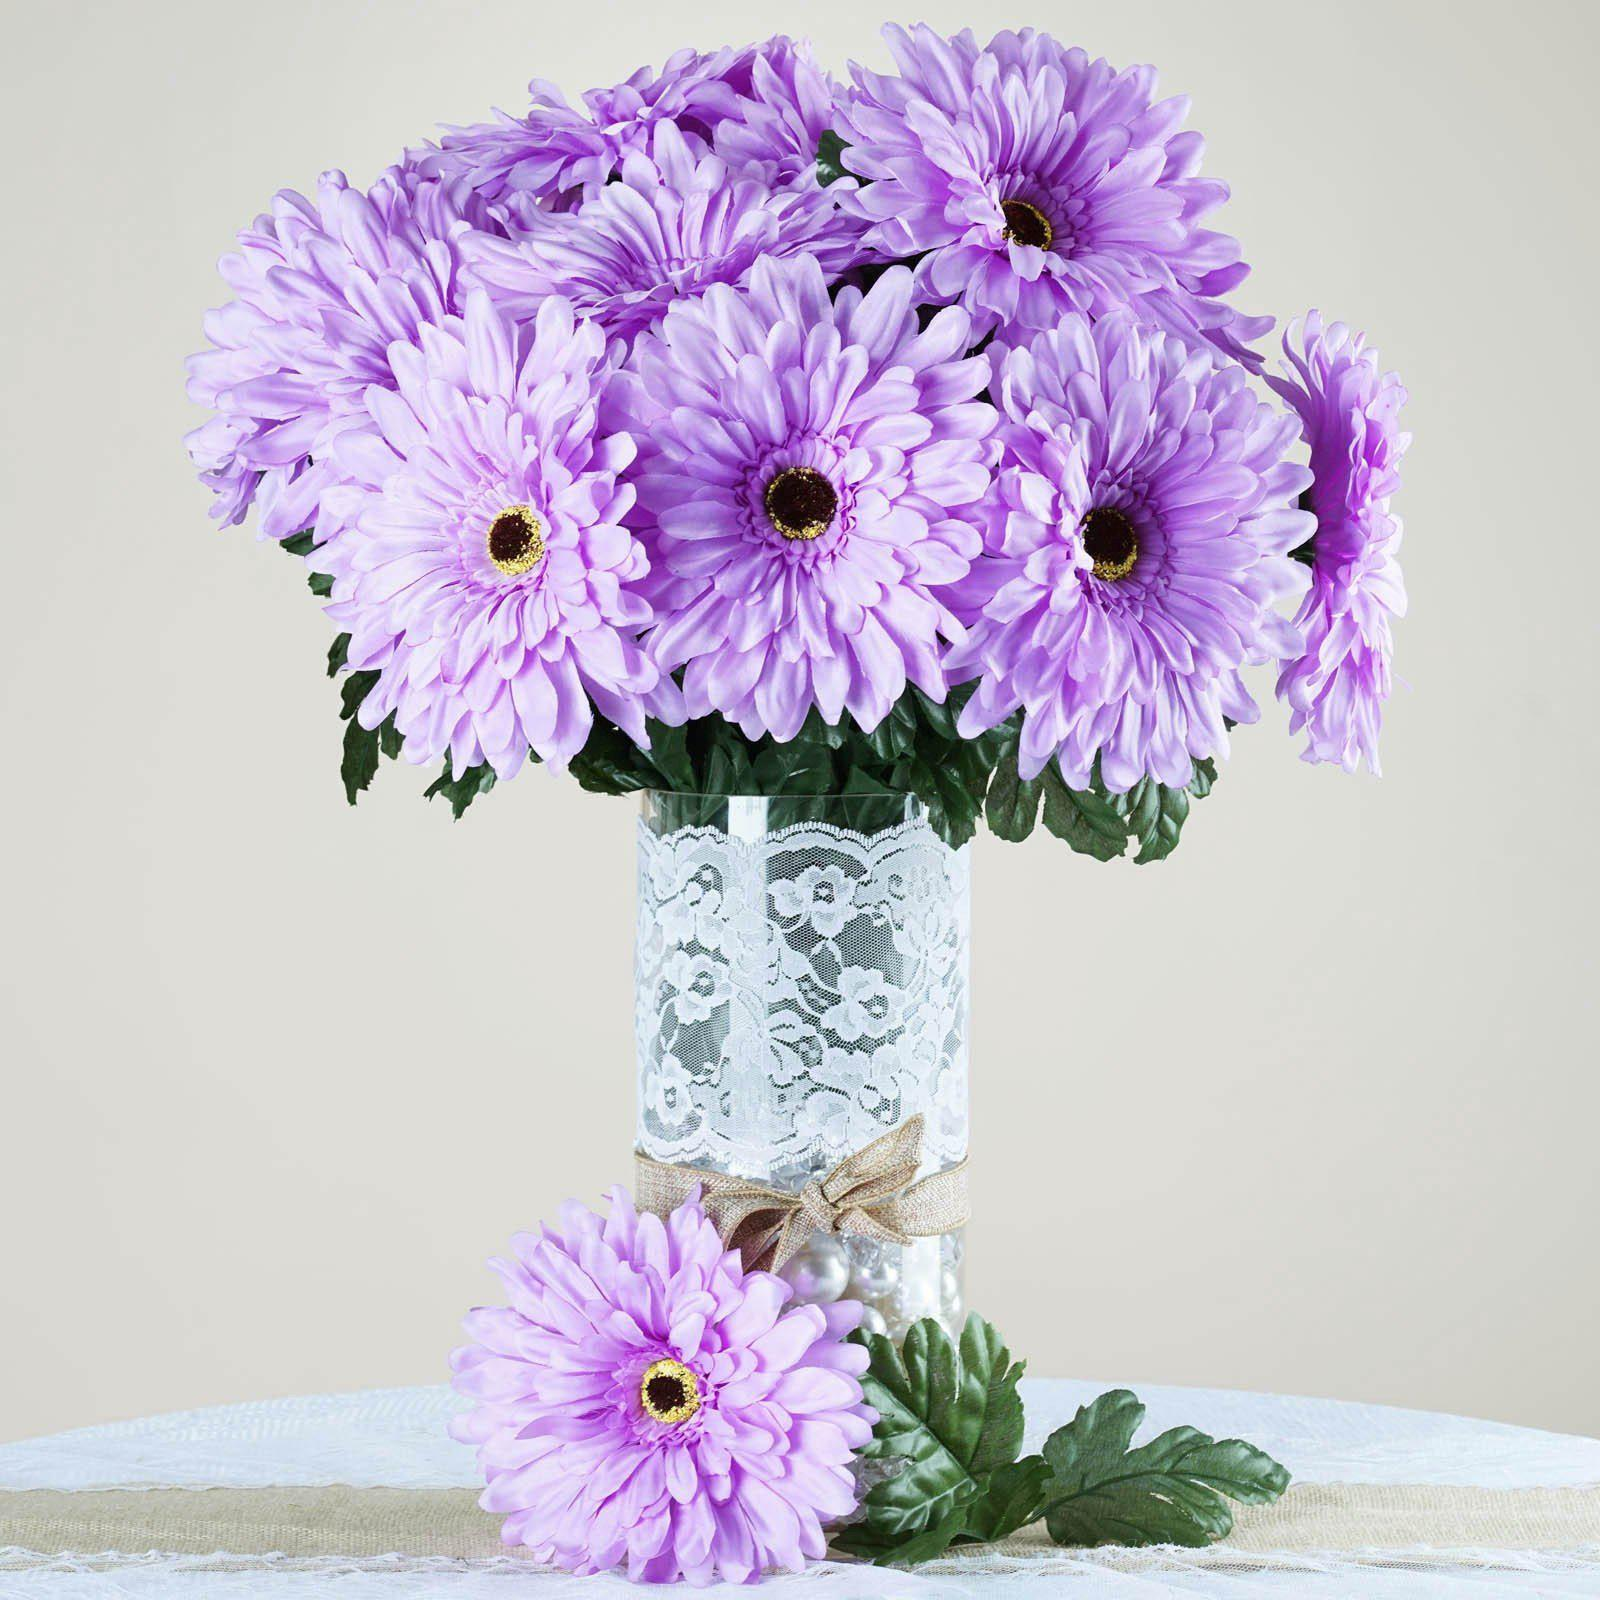 4 Bush 28 Pcs Lavender Gerbera Daisy Artificial Flowers Wedding Vase